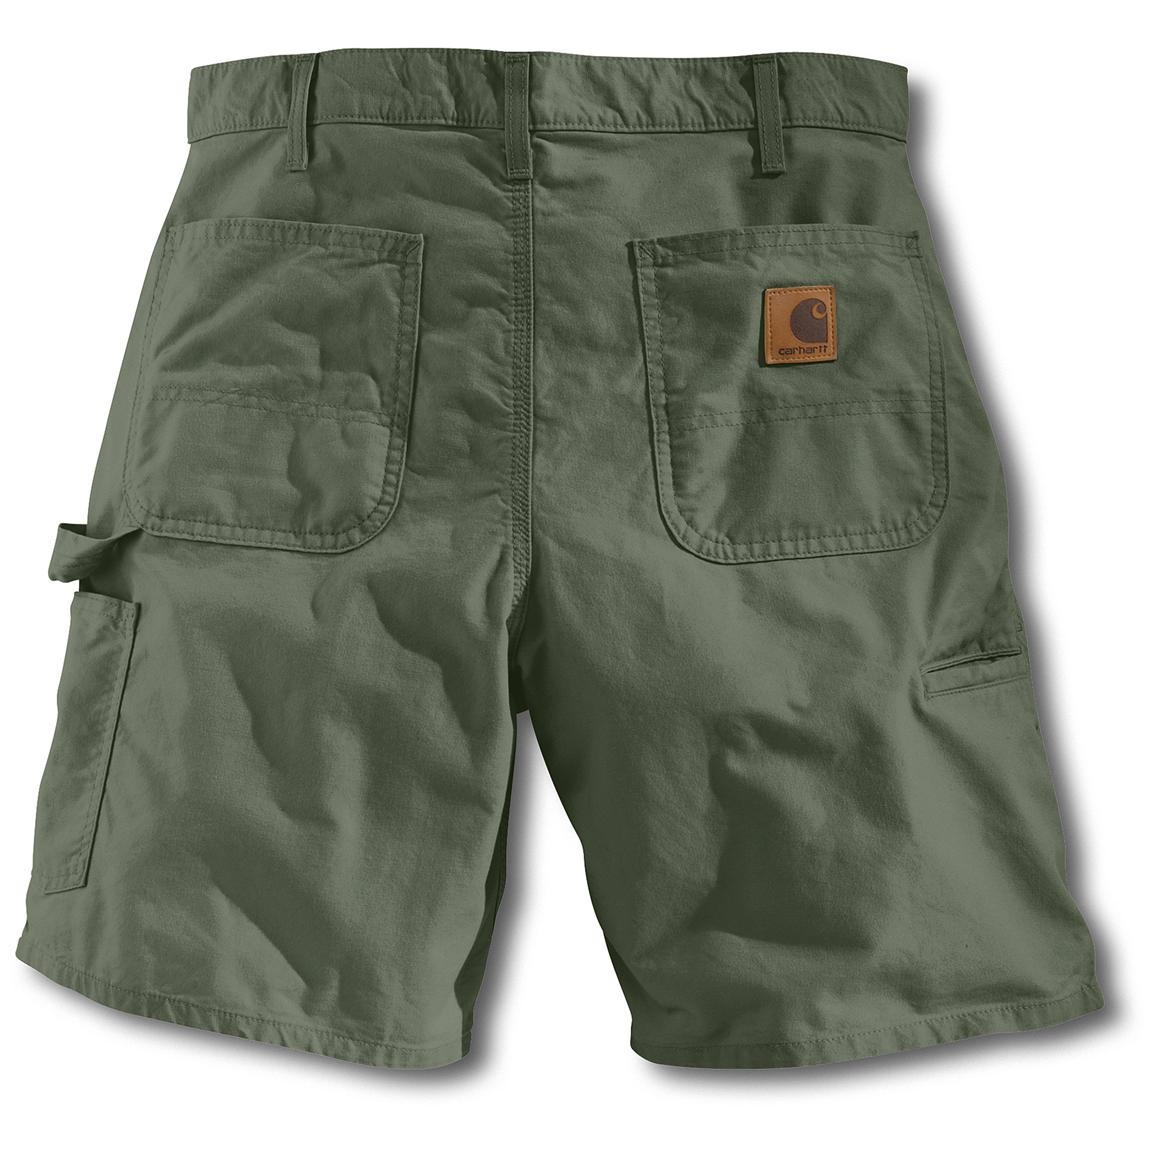 Carhartt Work Shorts, Olive